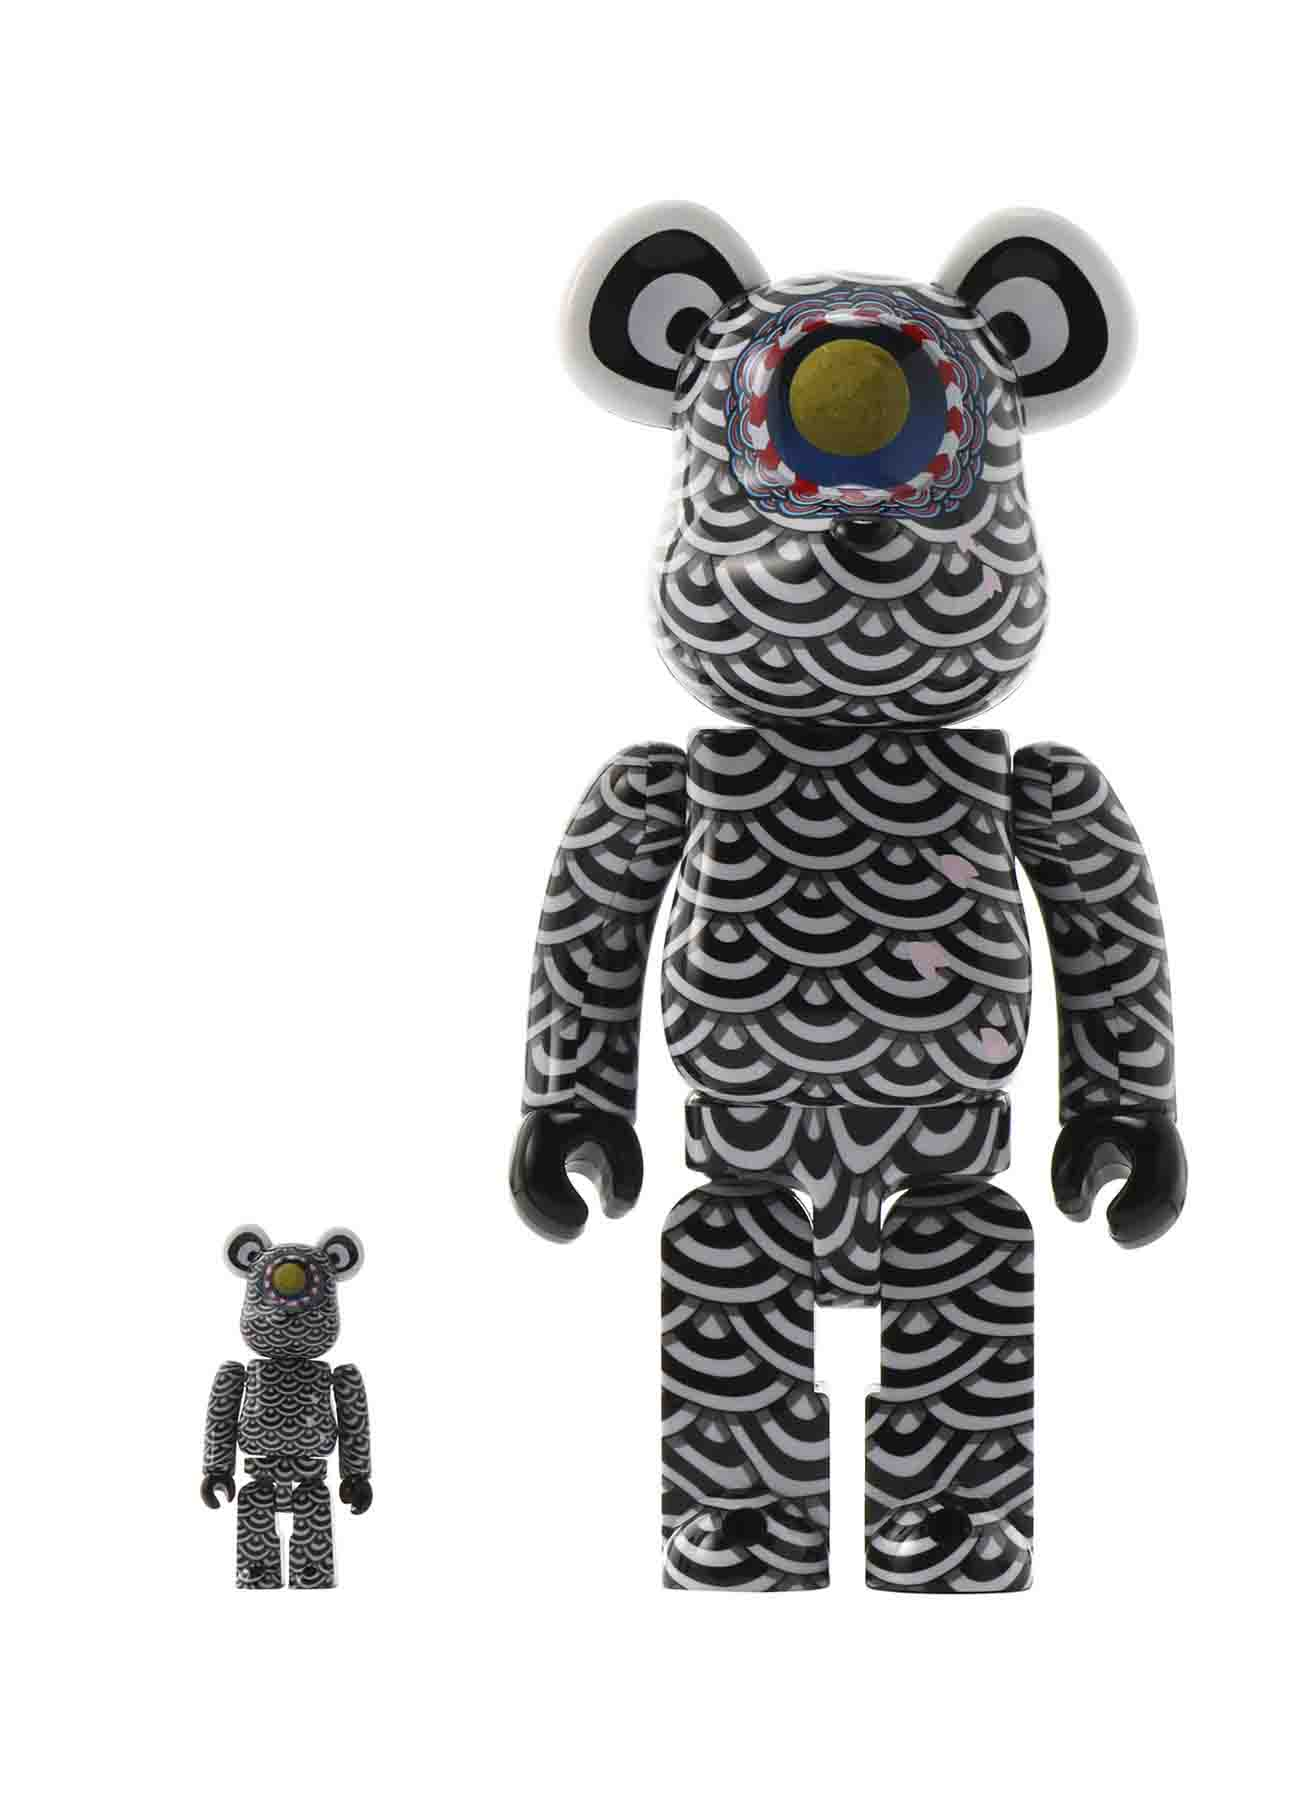 YASUTO SASADA Collaboration BEARBRICK